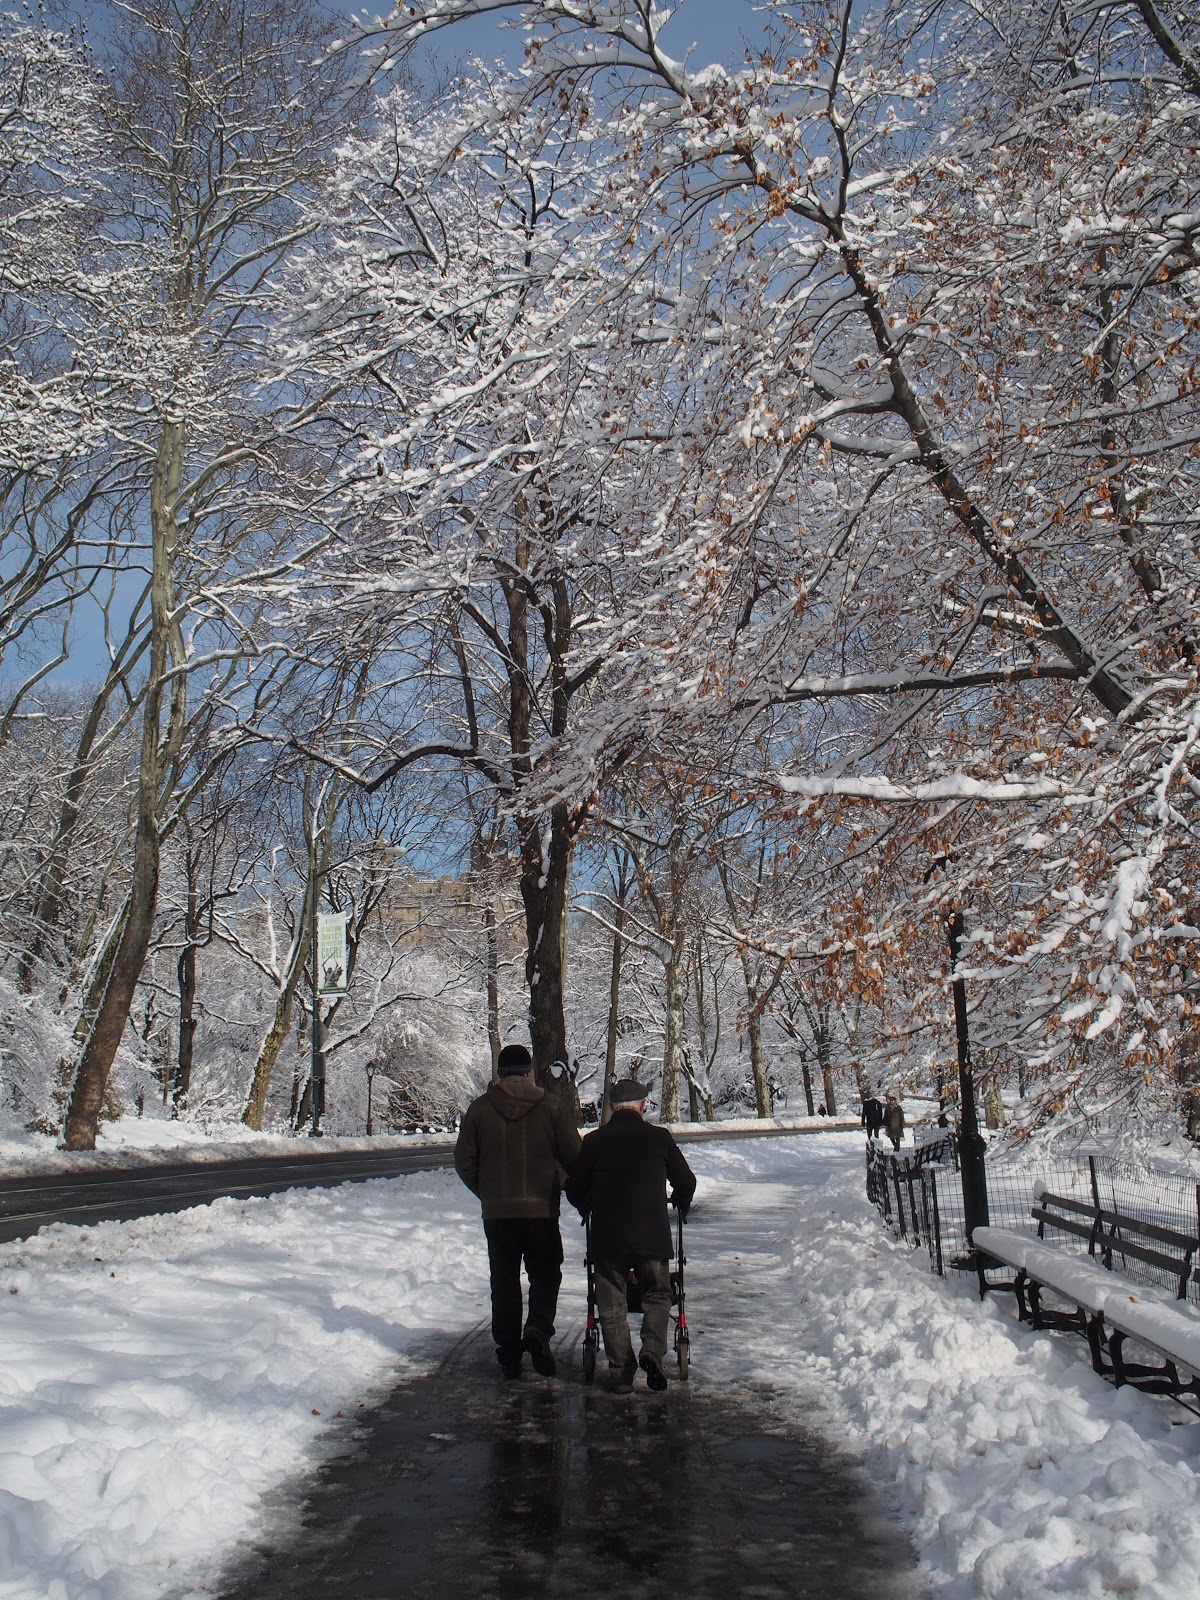 Walking in a Winter Wonderland #walking #walkinginawinterwonderland #centralpark #nyc 2014